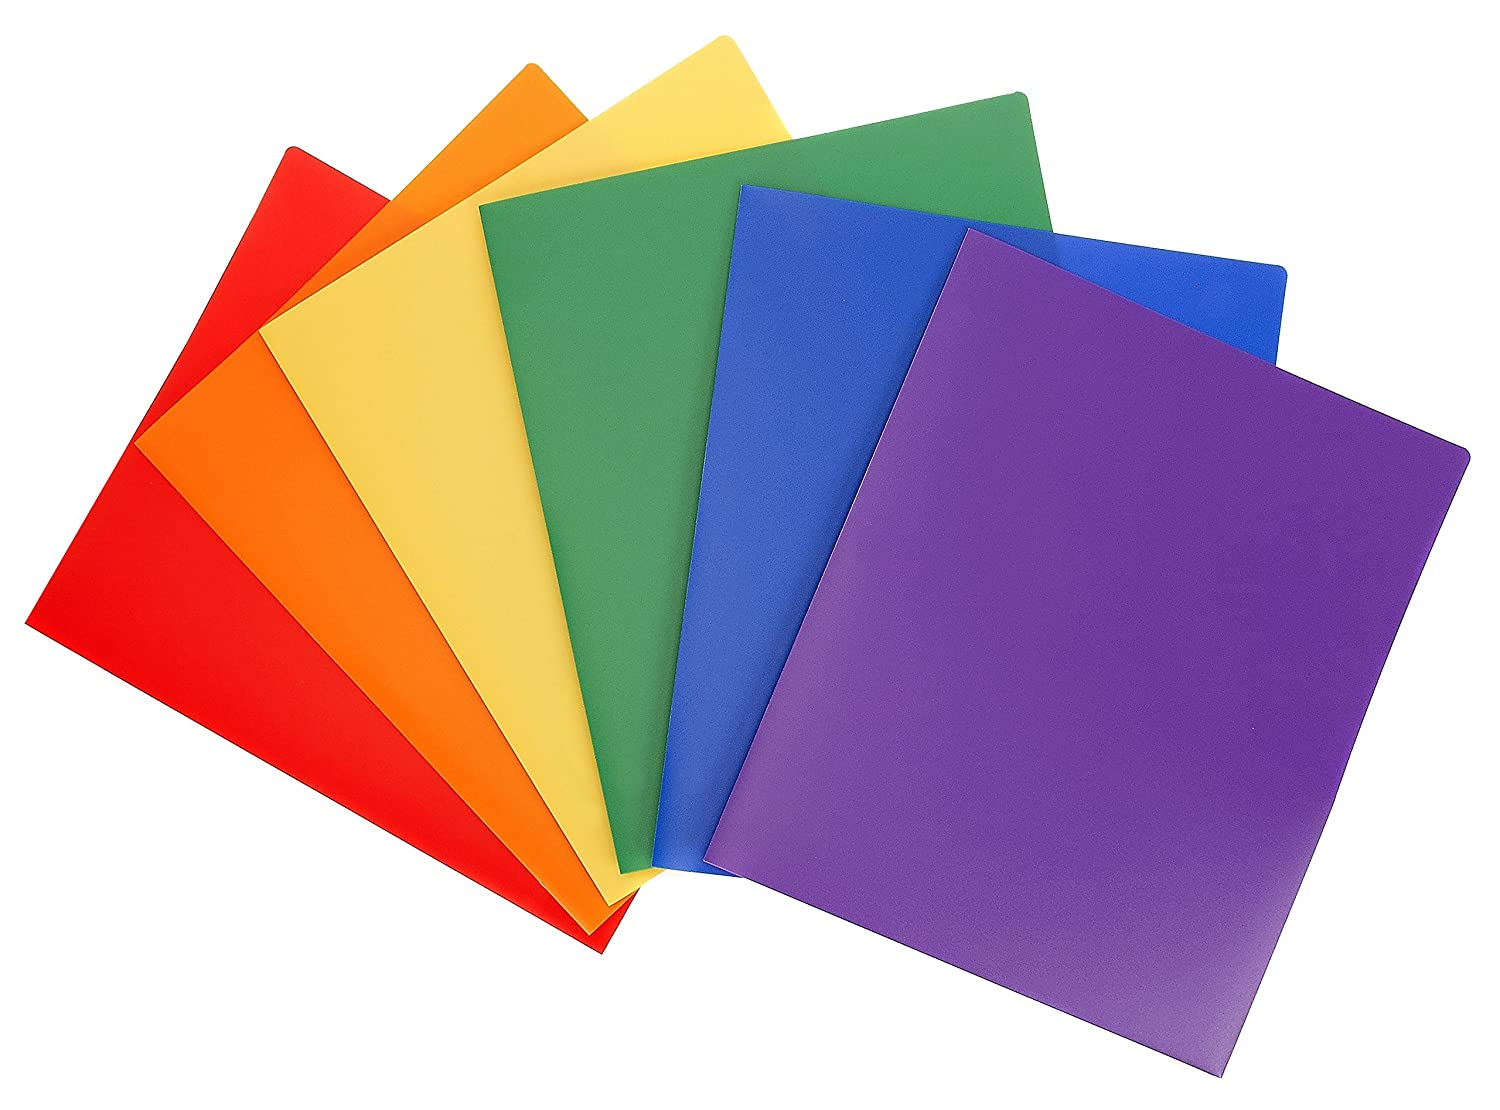 STEMSFX Heavy Duty Plastic 2 Pocket Folder (Pack of 6 Folders Assorted Colors) For Letter Size Papers, Includes Business Card Slot 1007